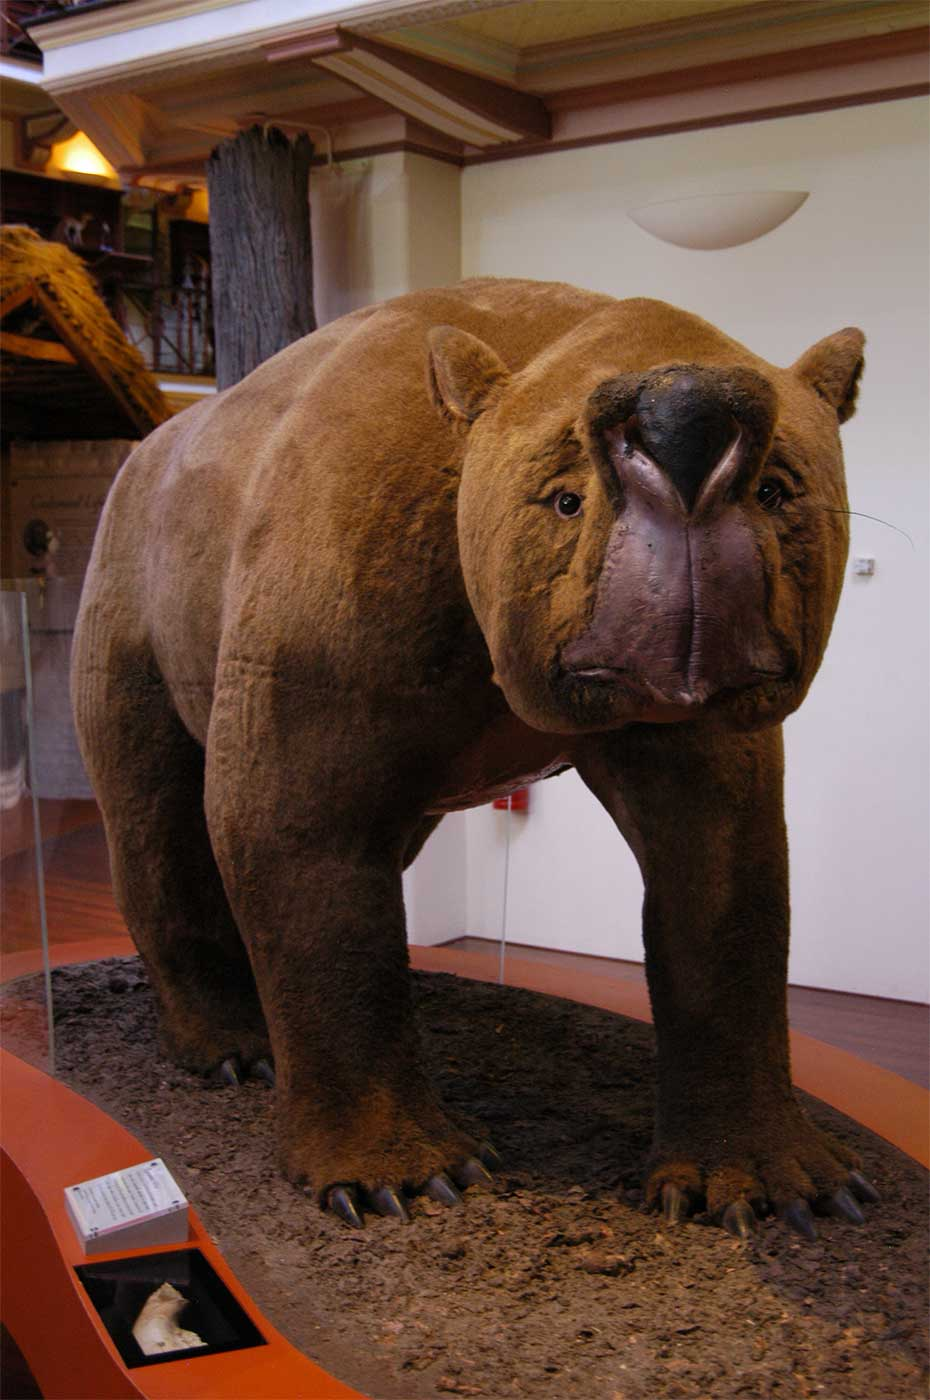 Museum exhibit of a reconstructed, large four-legged animal with brown fur and sharp claws.  - click to view larger image